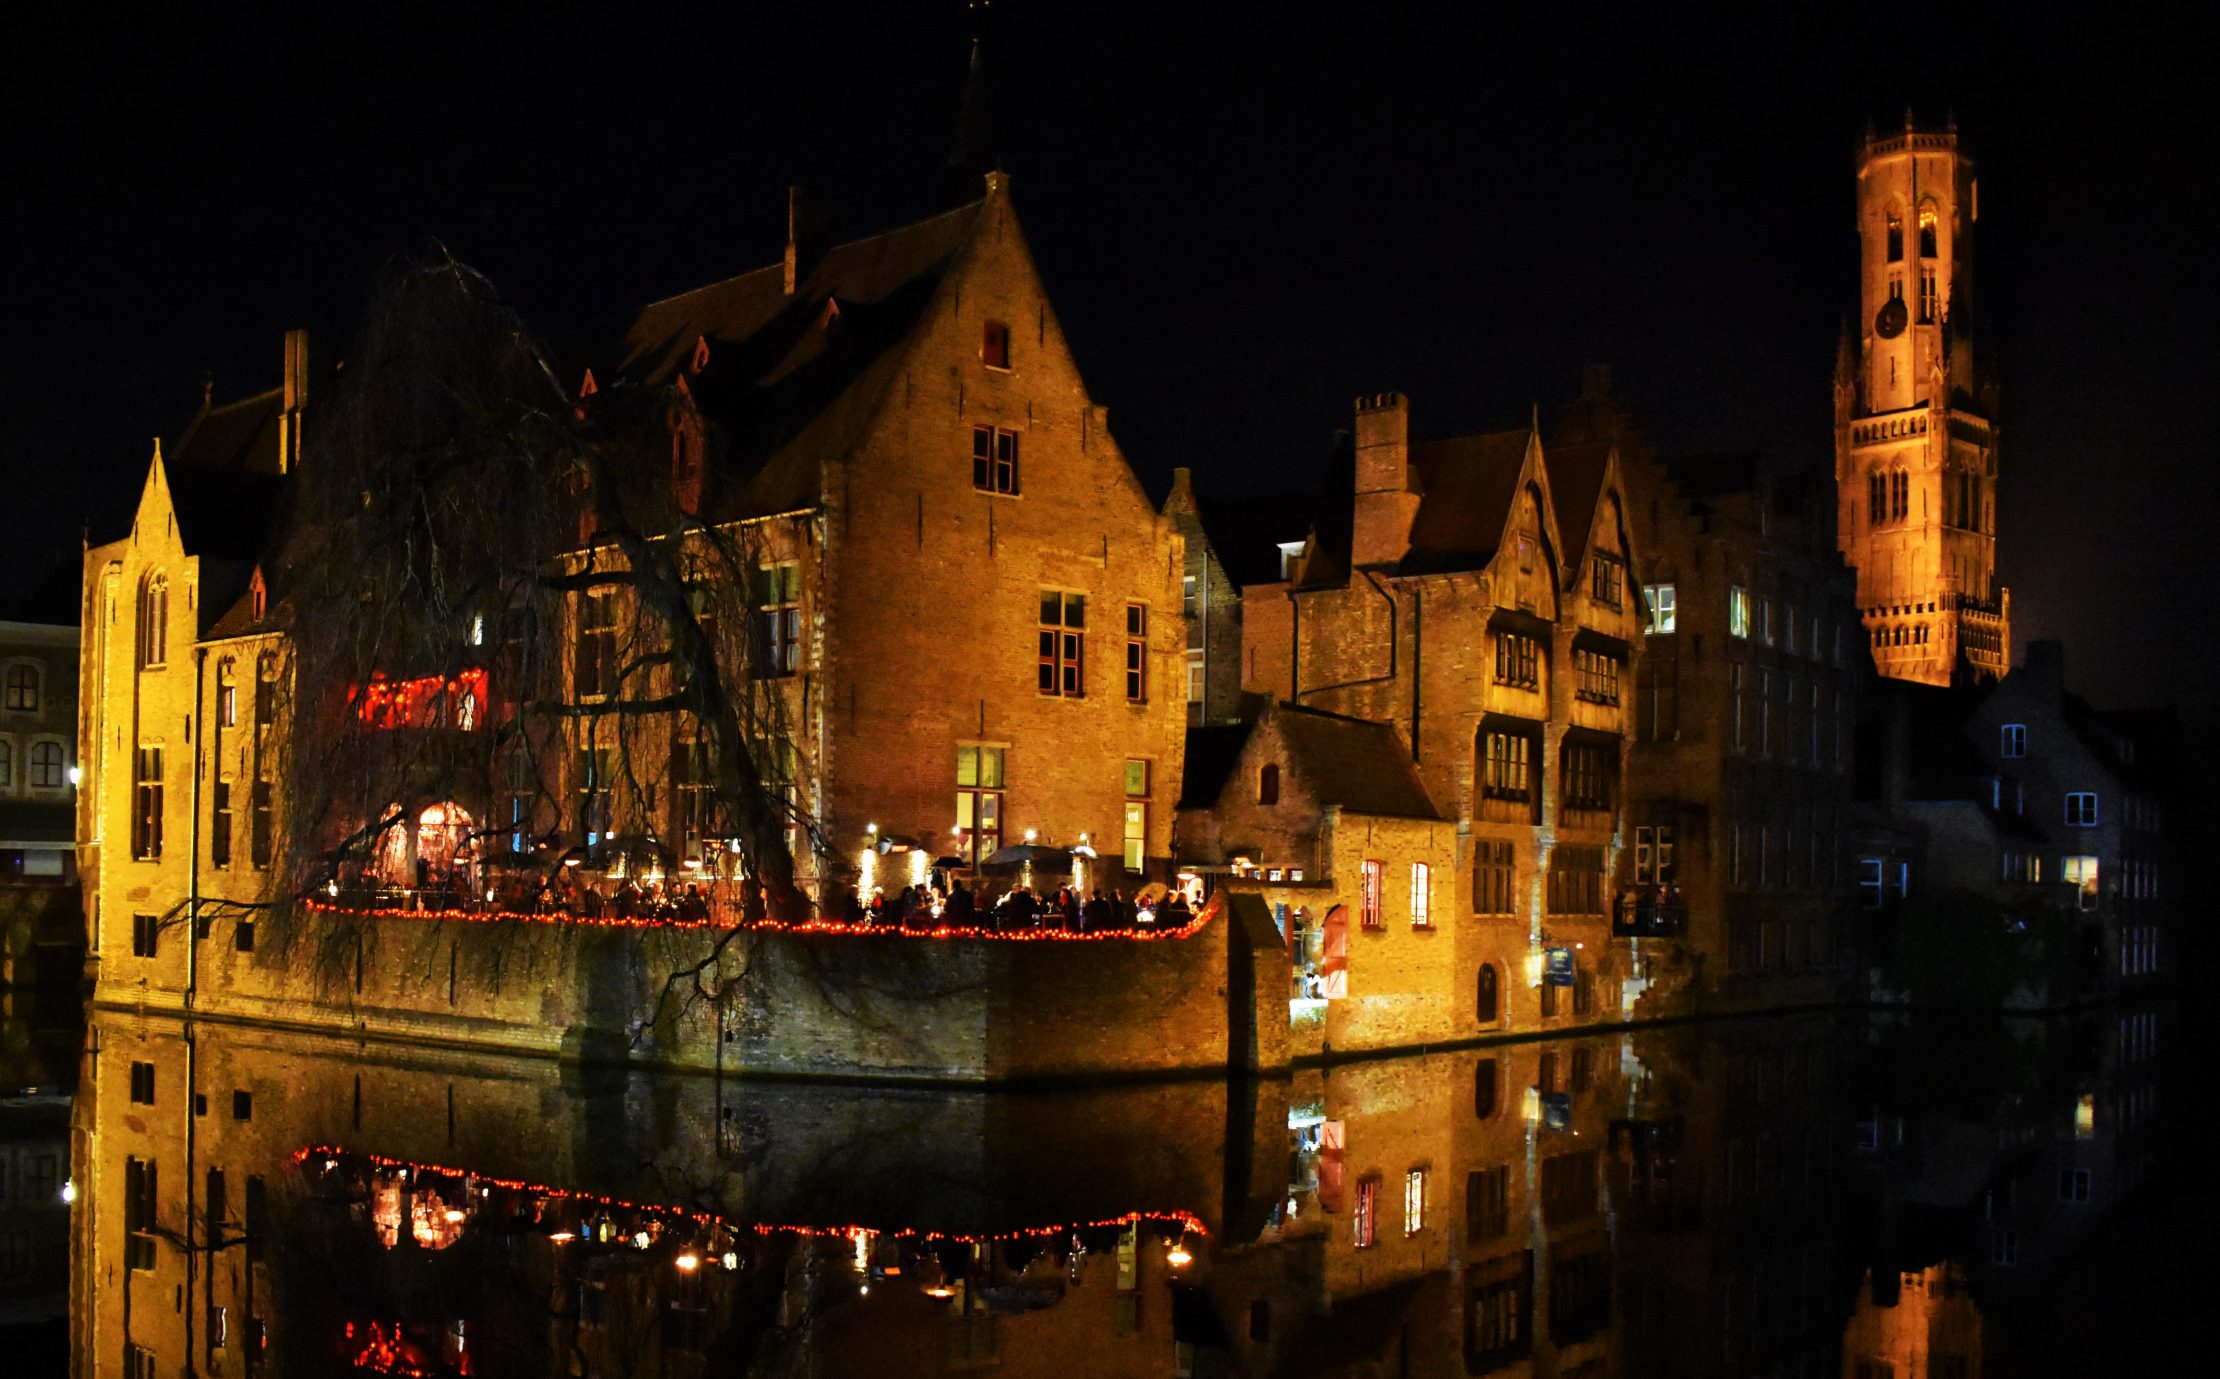 Romantic cafes along the canals